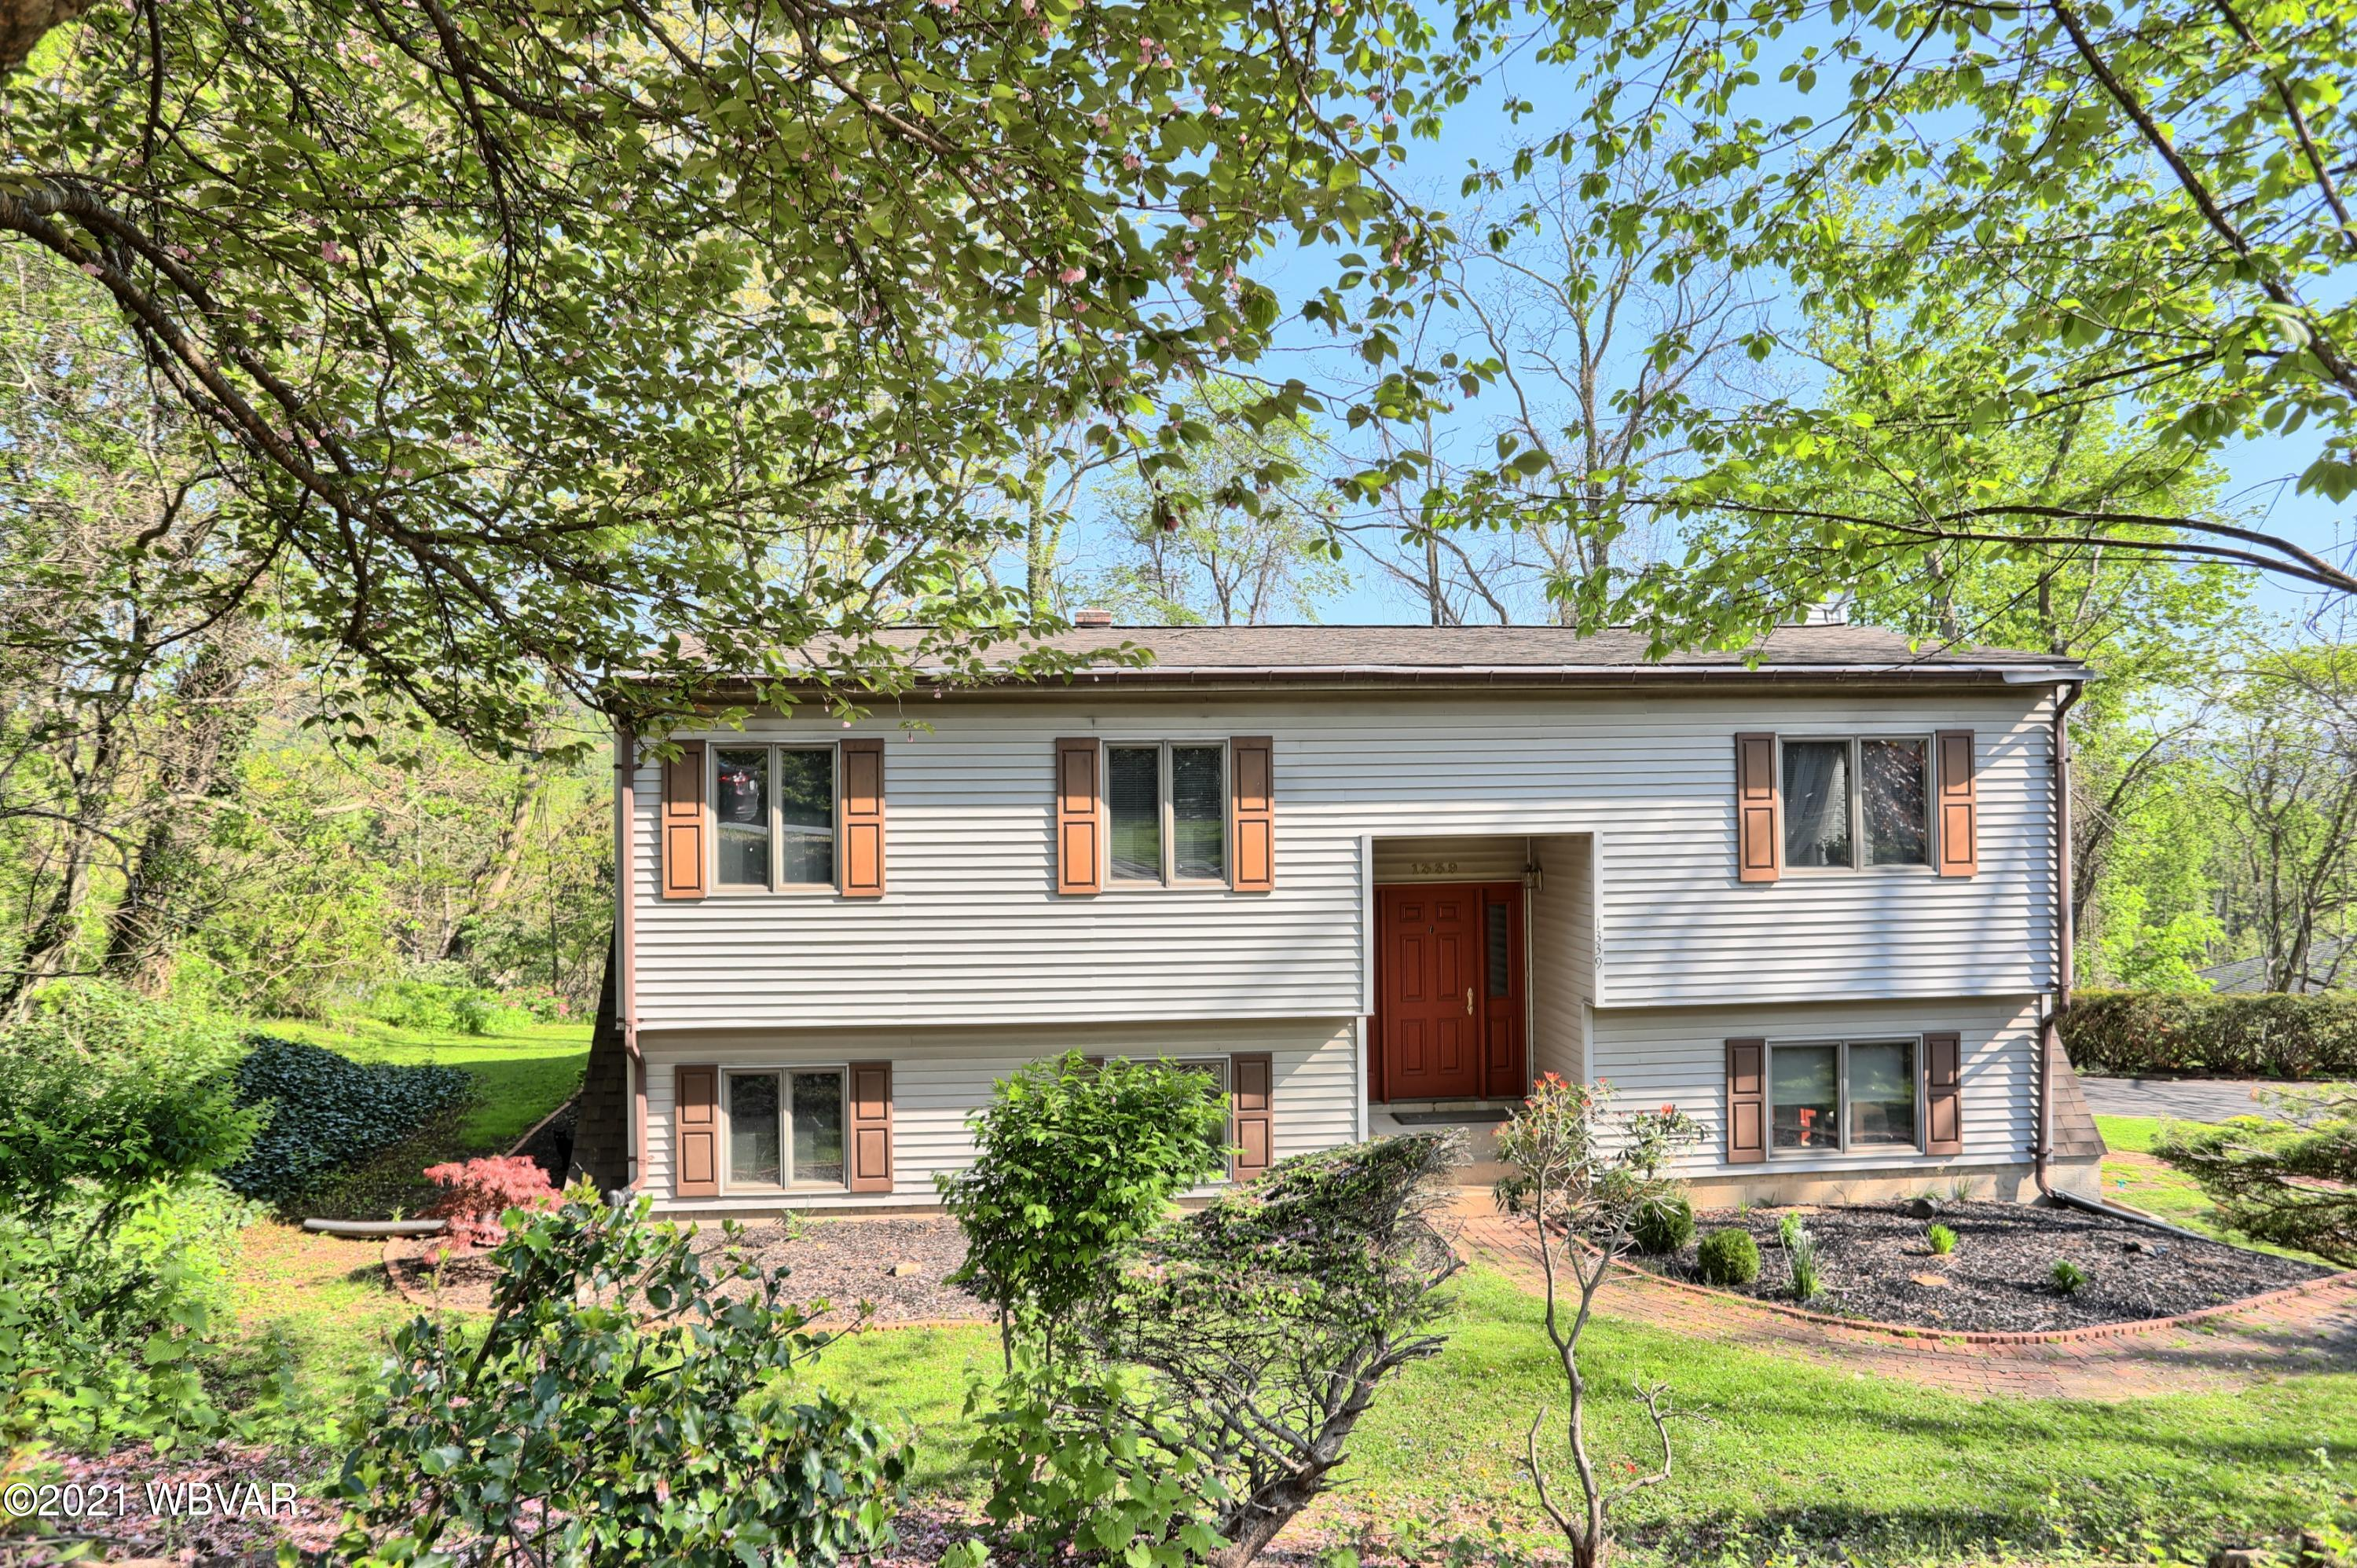 1339 ADELE ROAD, Montoursville, PA 17754, 4 Bedrooms Bedrooms, ,3 BathroomsBathrooms,Residential,For sale,ADELE,WB-92518